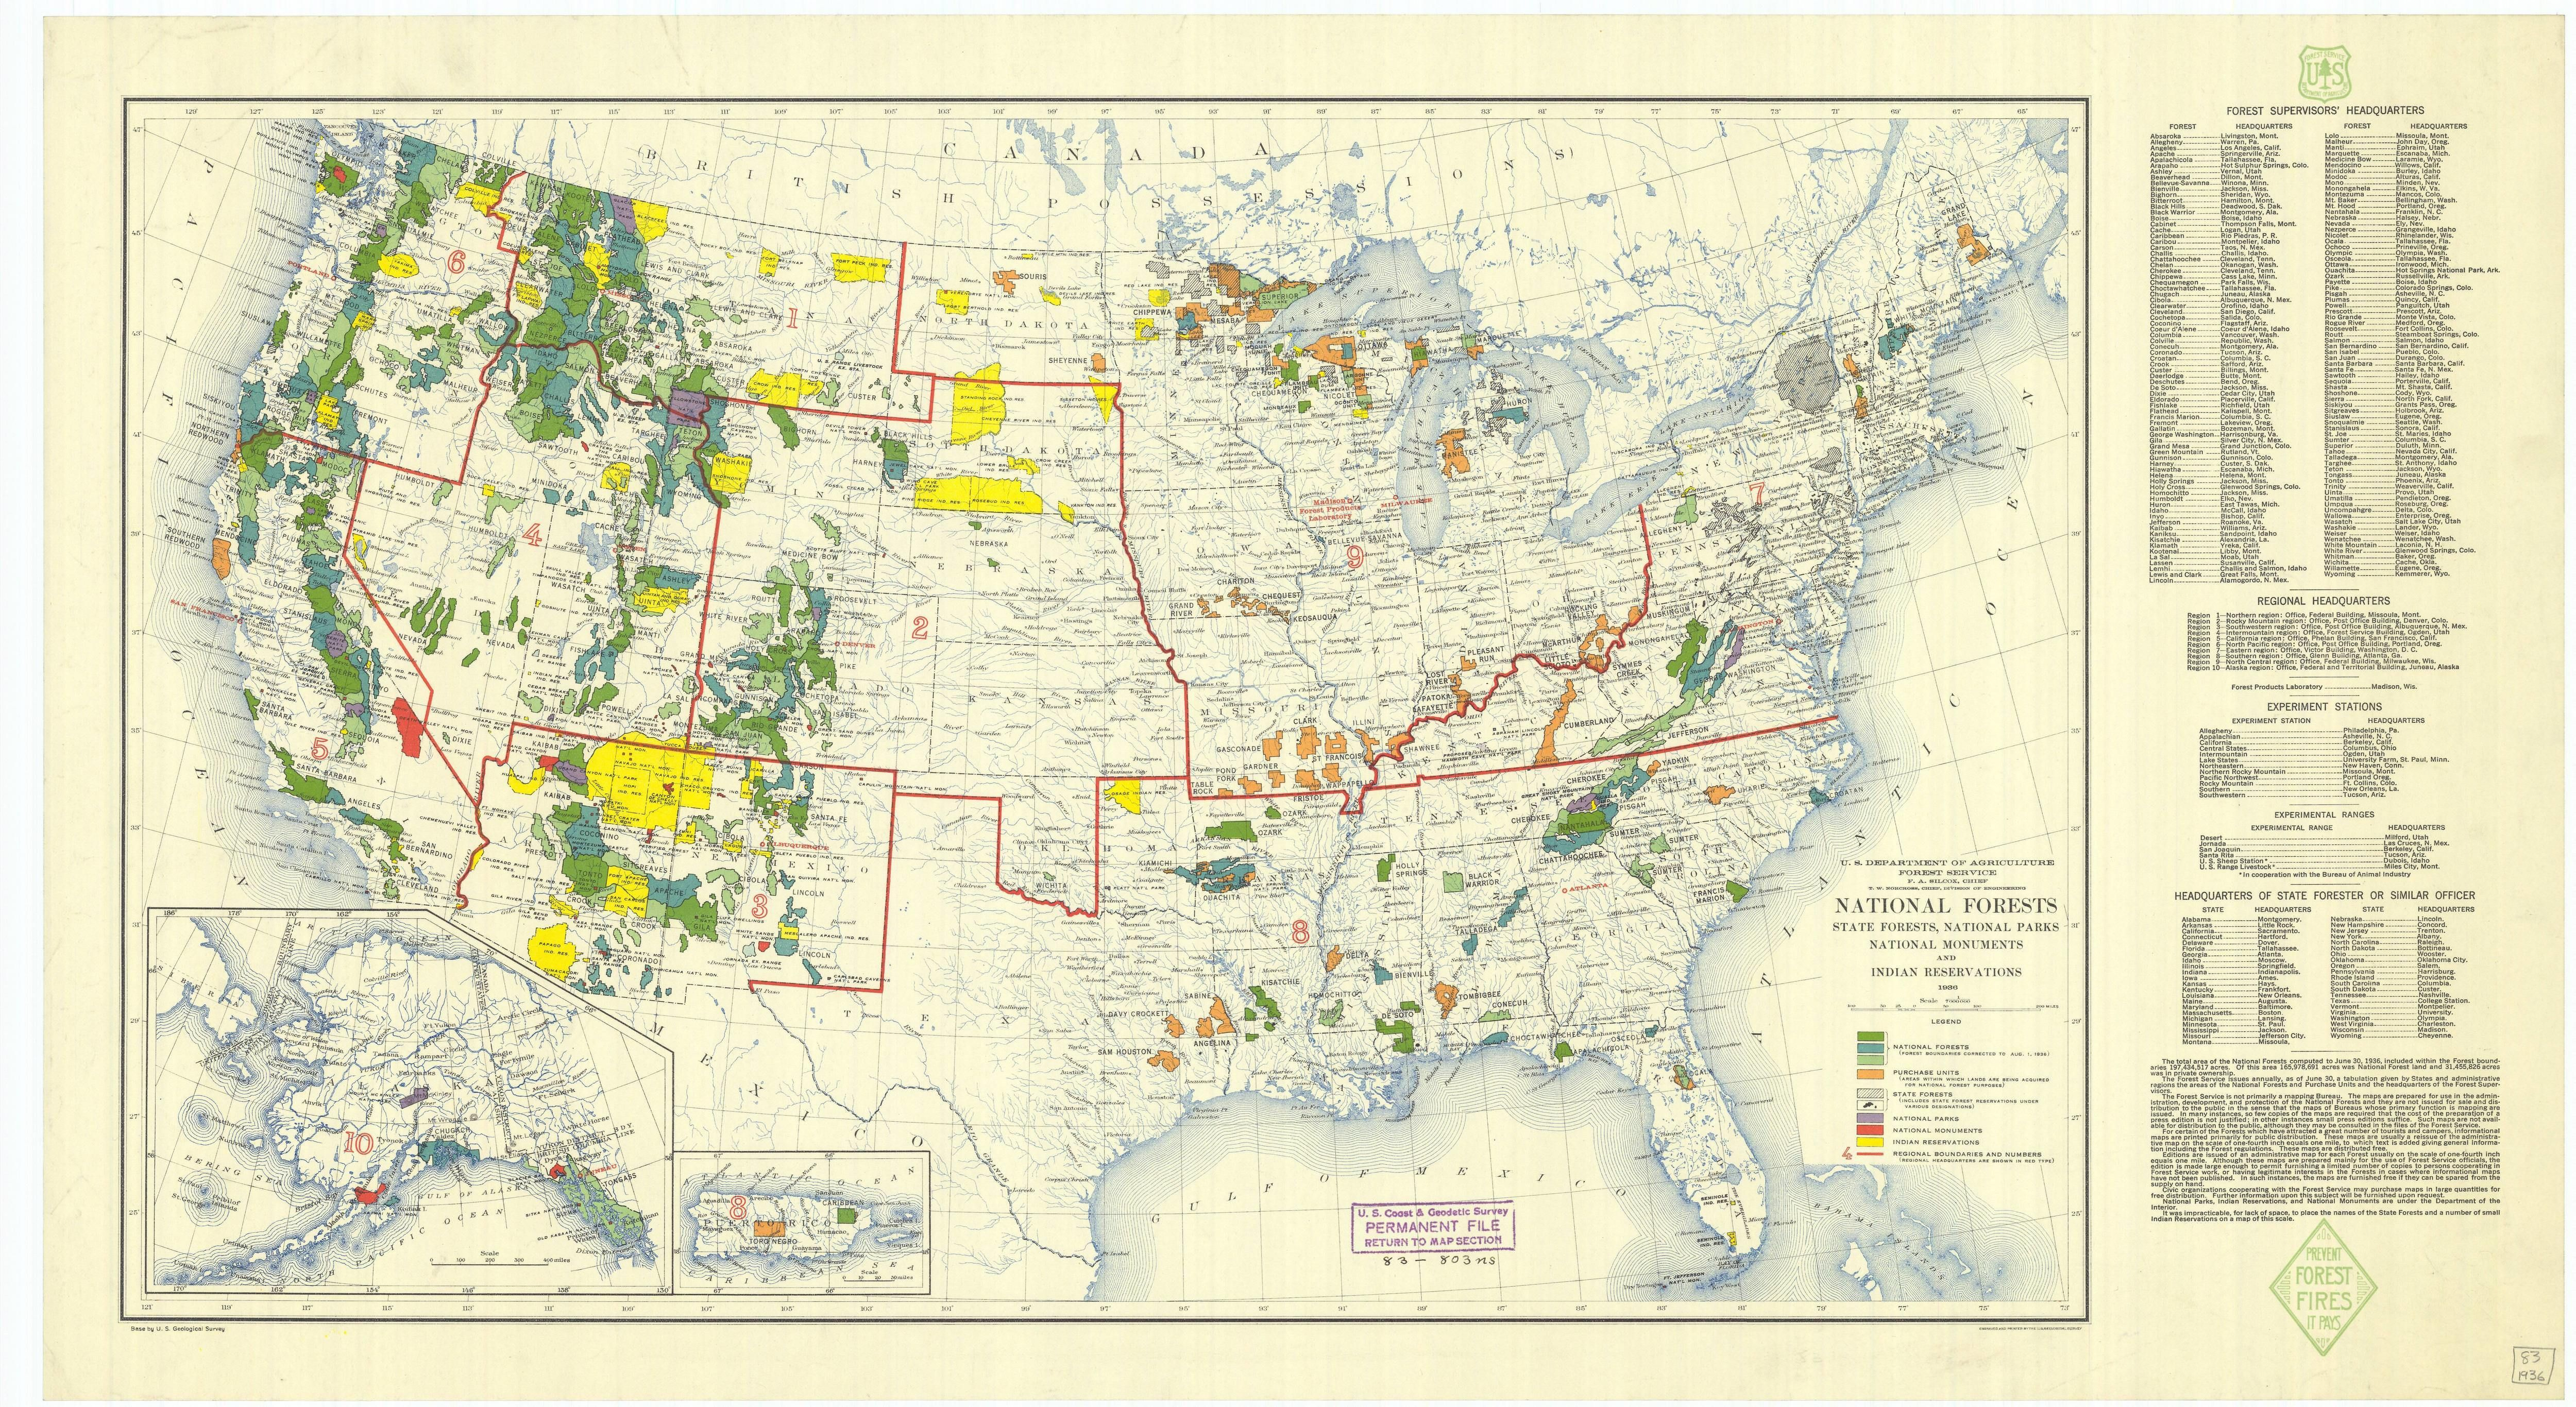 1936 Map Of United States National Forests State Forests